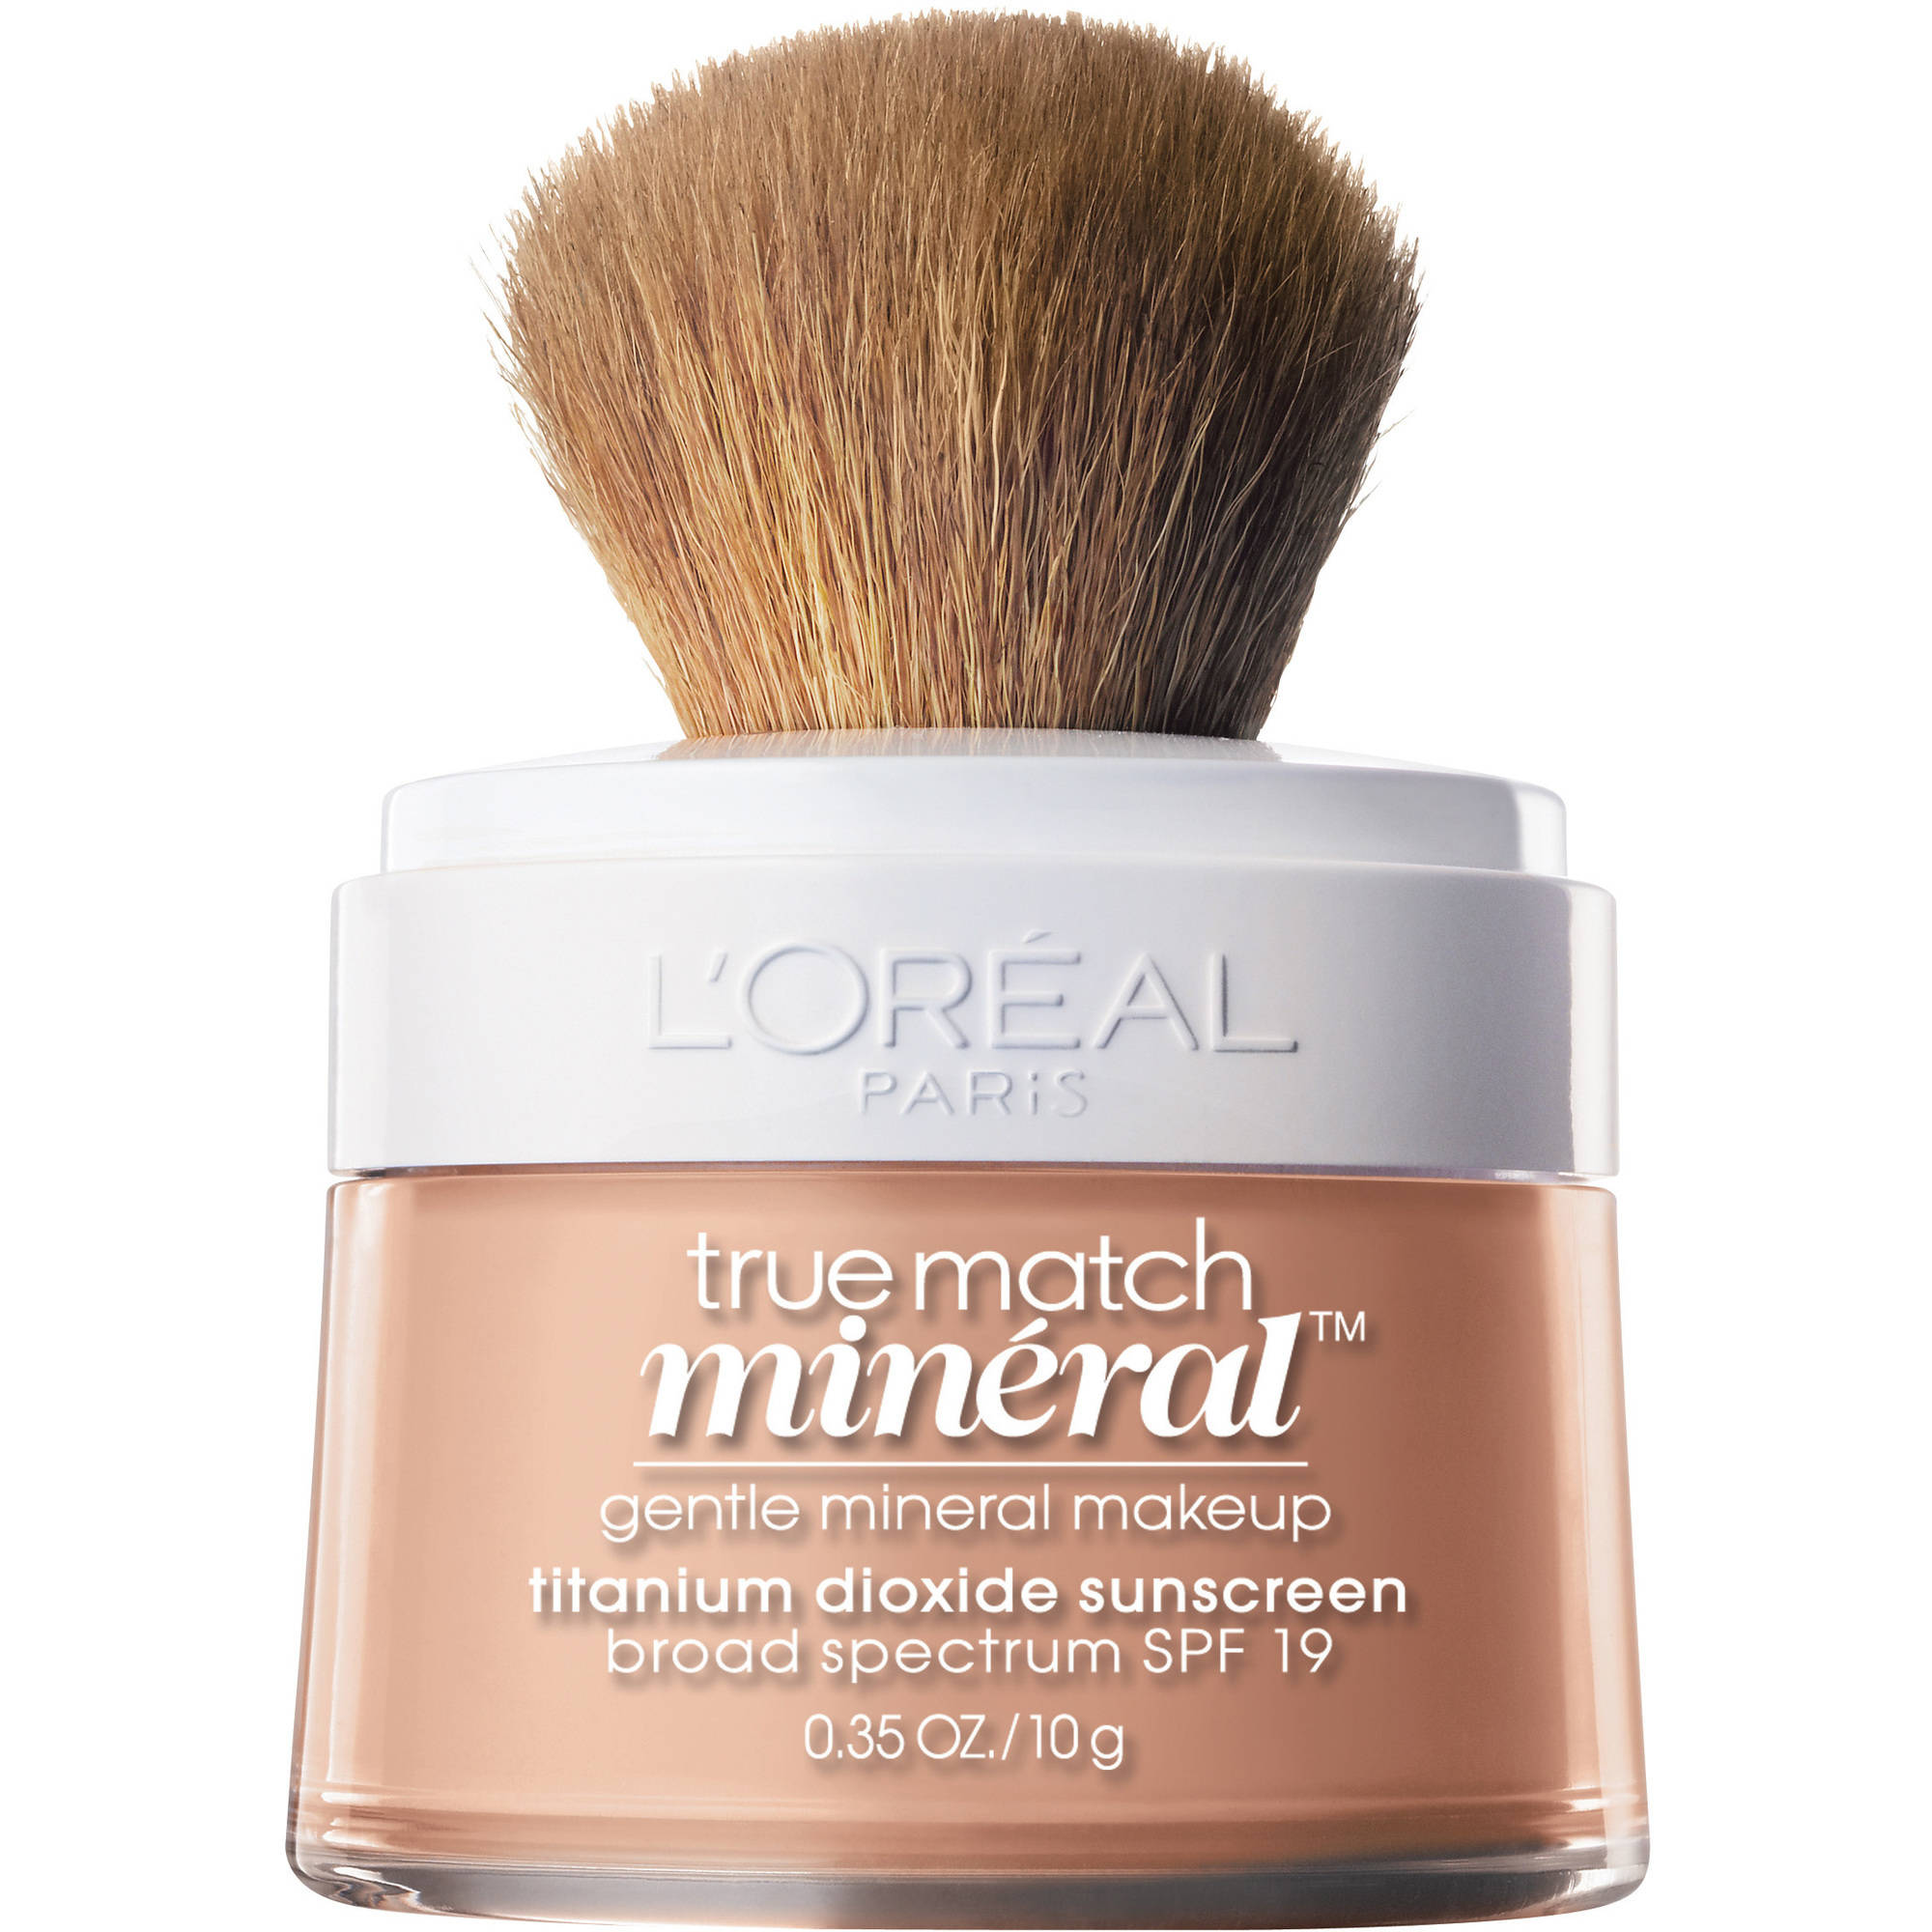 L'Oreal Paris True Match Naturale Mineral Foundation with SPF 19